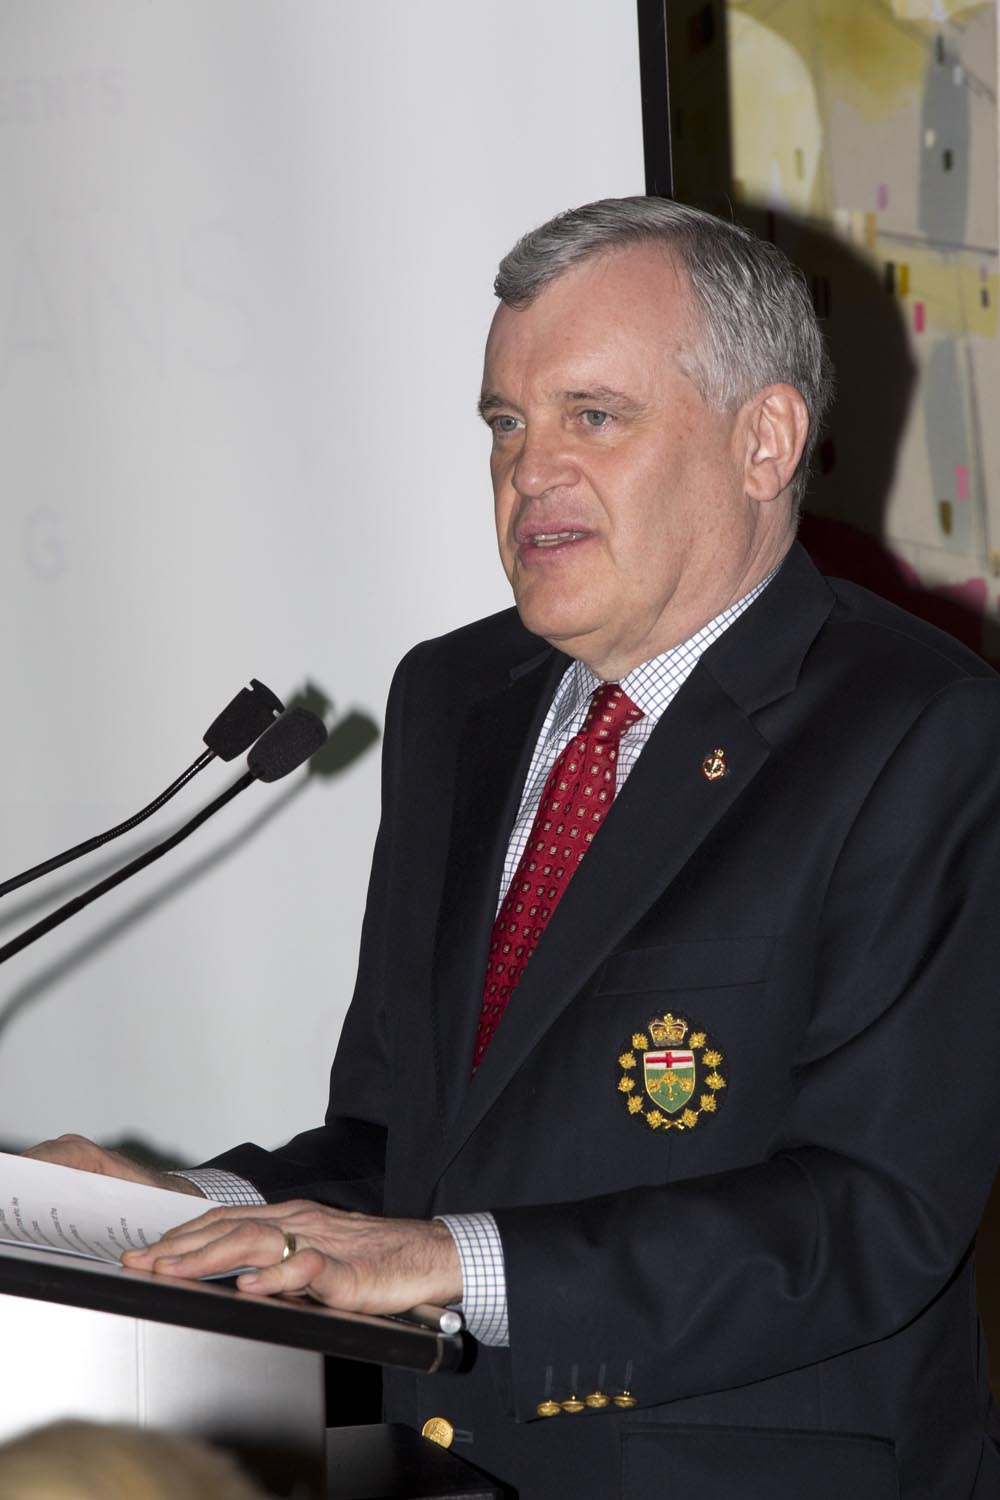 The Honourable David Onley, Lieutenant Governor of Ontario